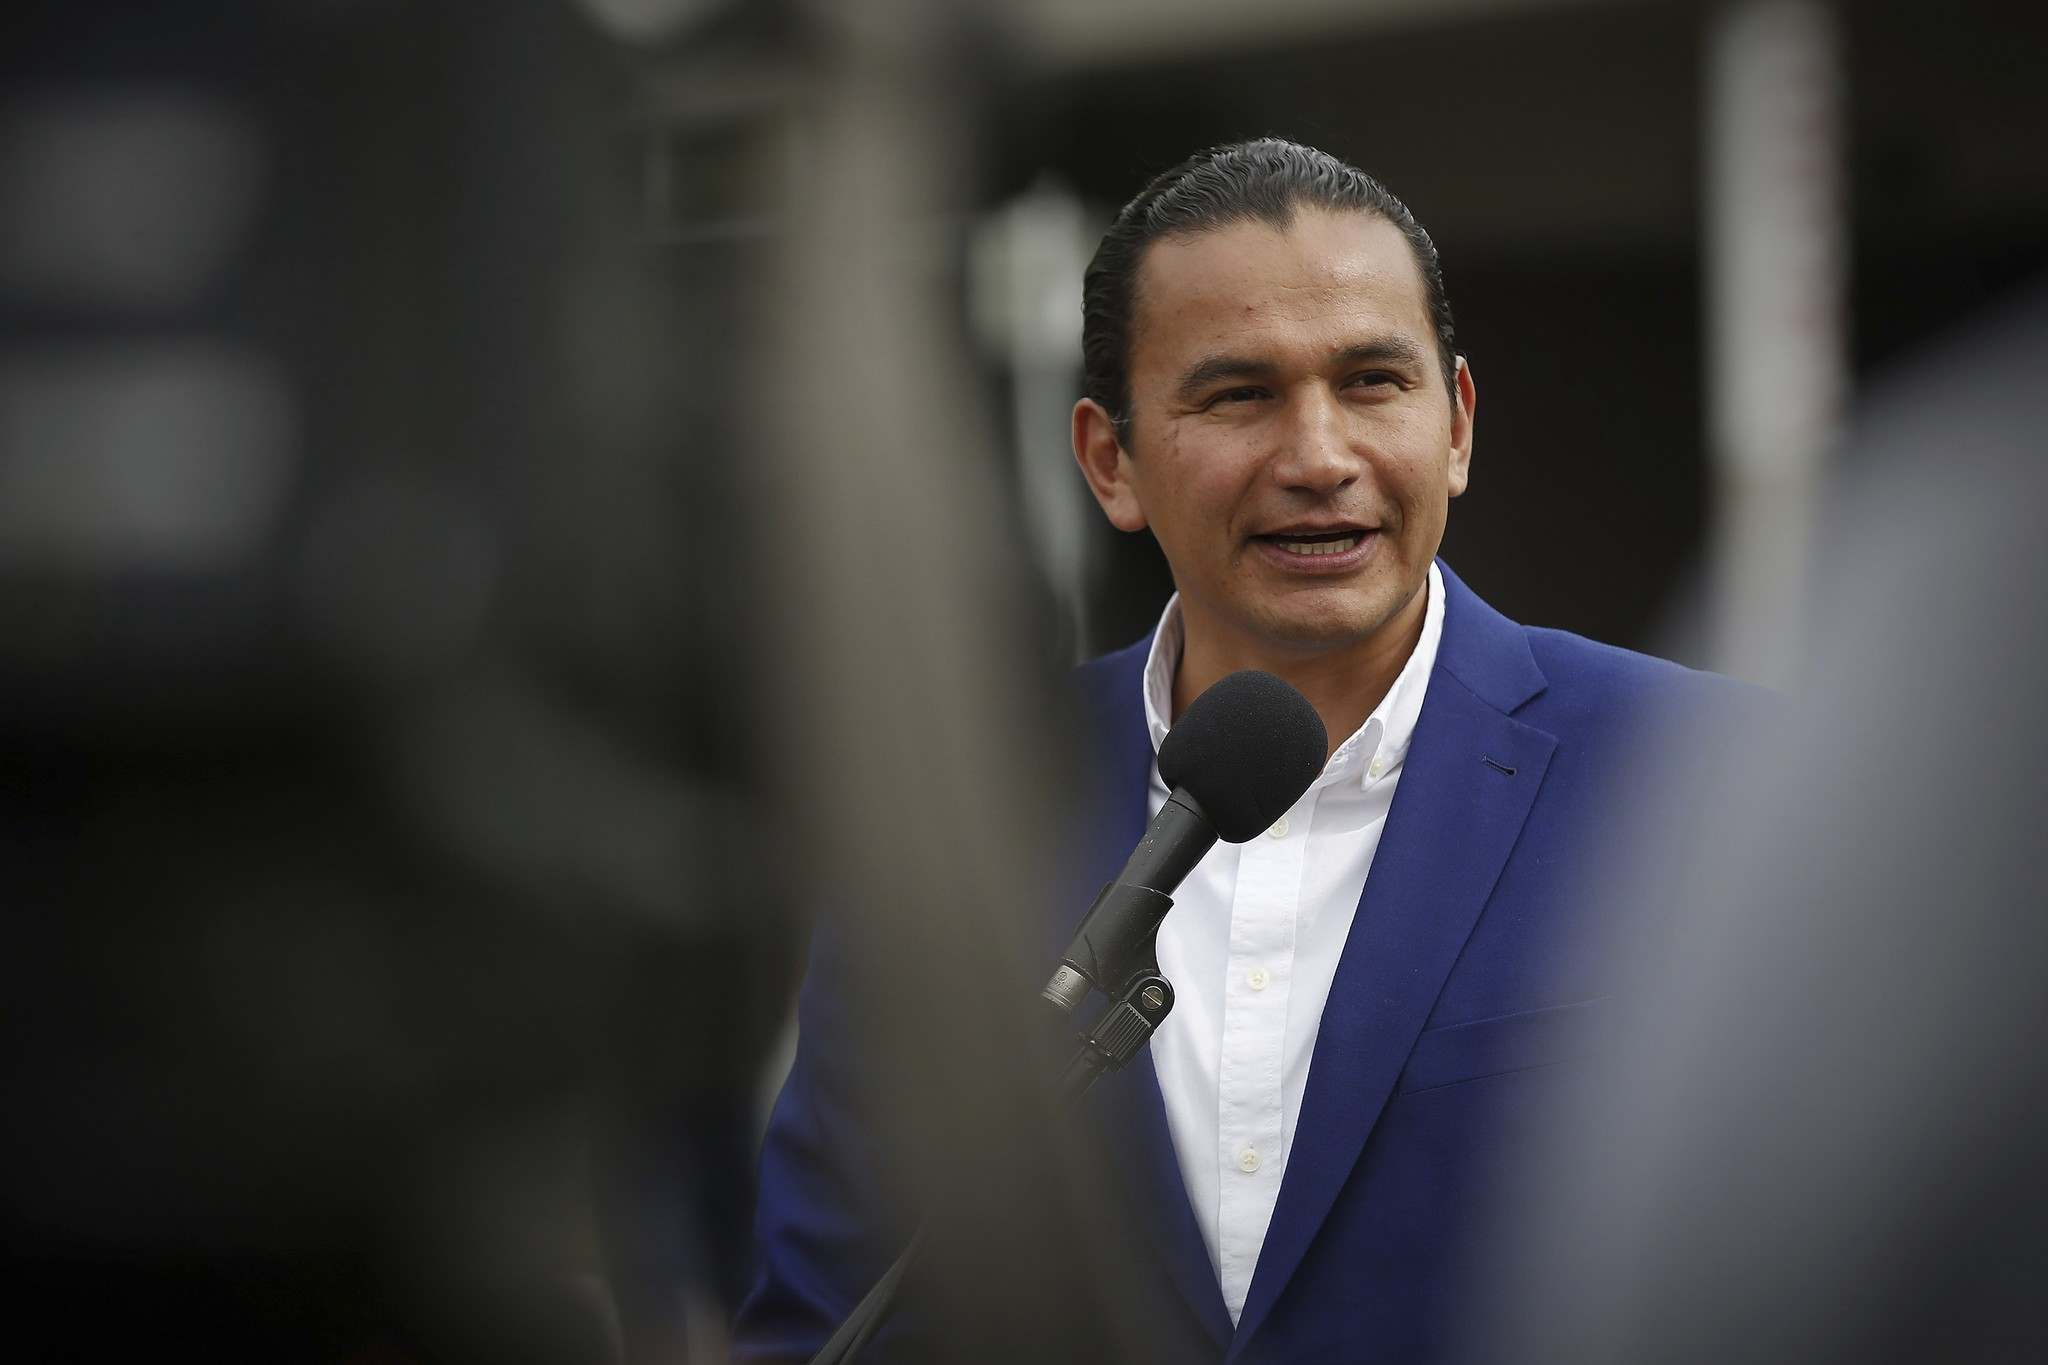 NDP Leader Wab Kinew introduced a private member's bill in December that would, if adopted, give the Métis leader the honorary title of first premier of Manitoba. (John Woods / The Canadian Press files)